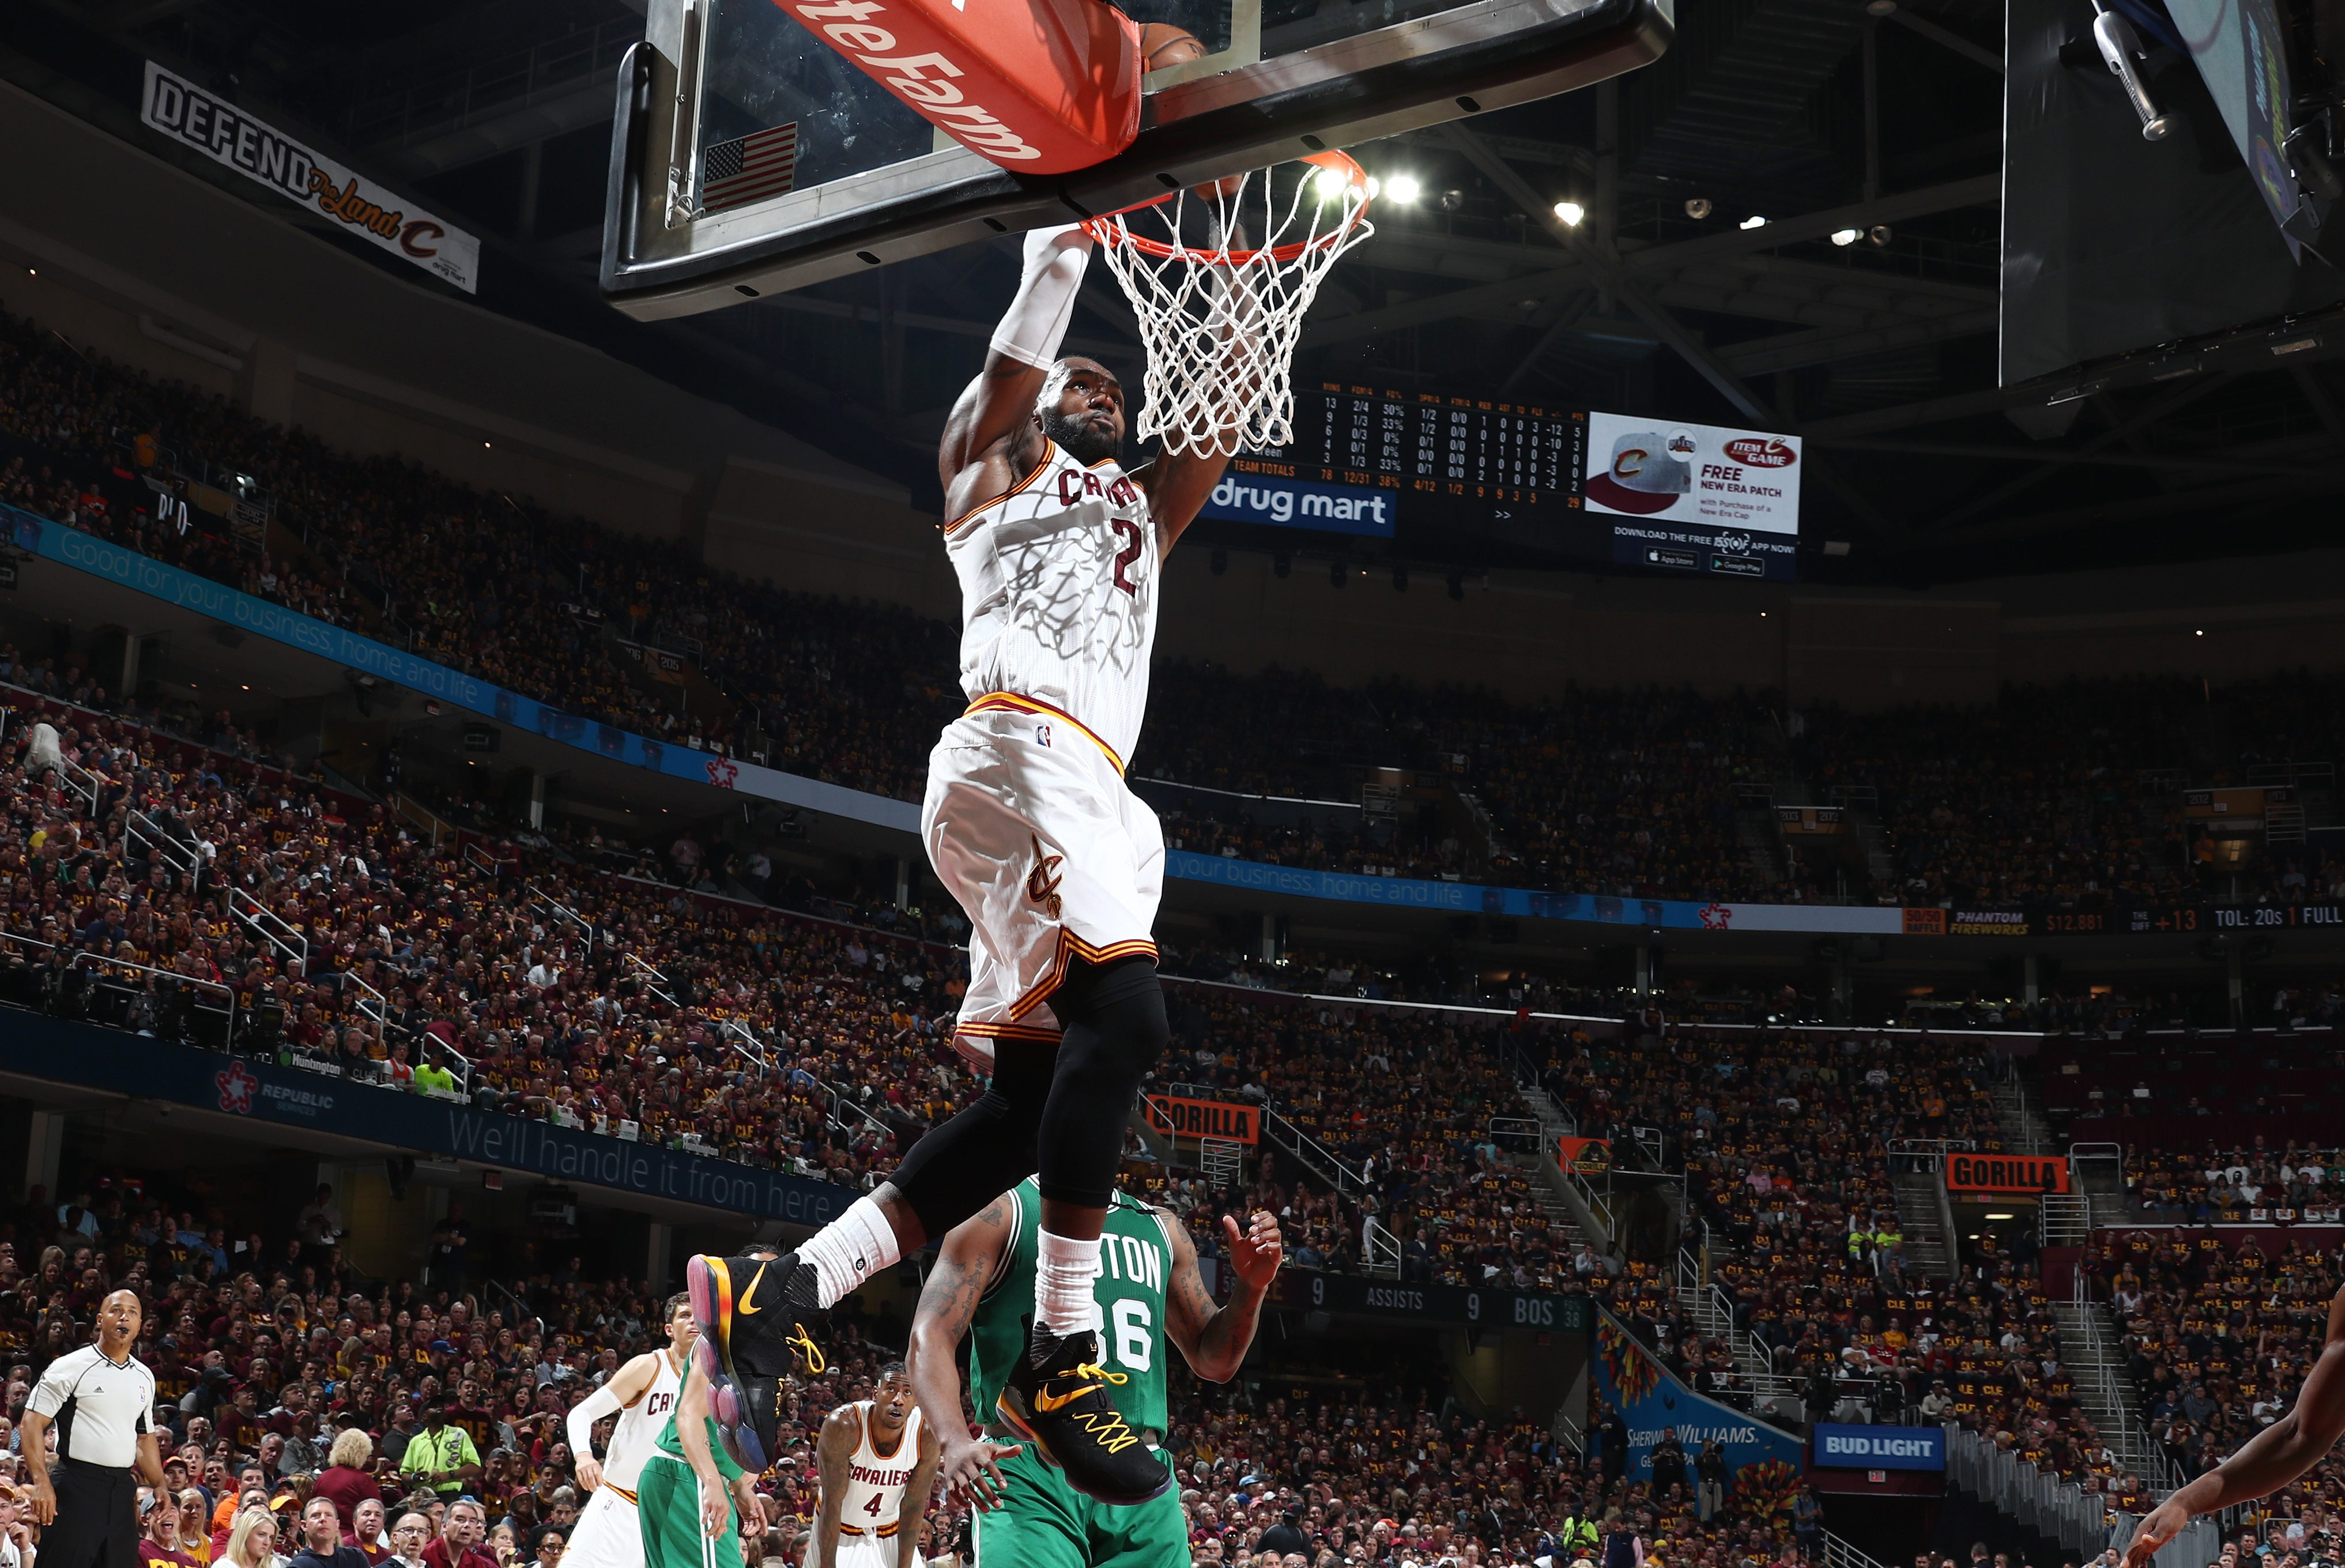 LeBron James needs 28 points to surpass Michael Jordan in career playoff points — The Undefeated